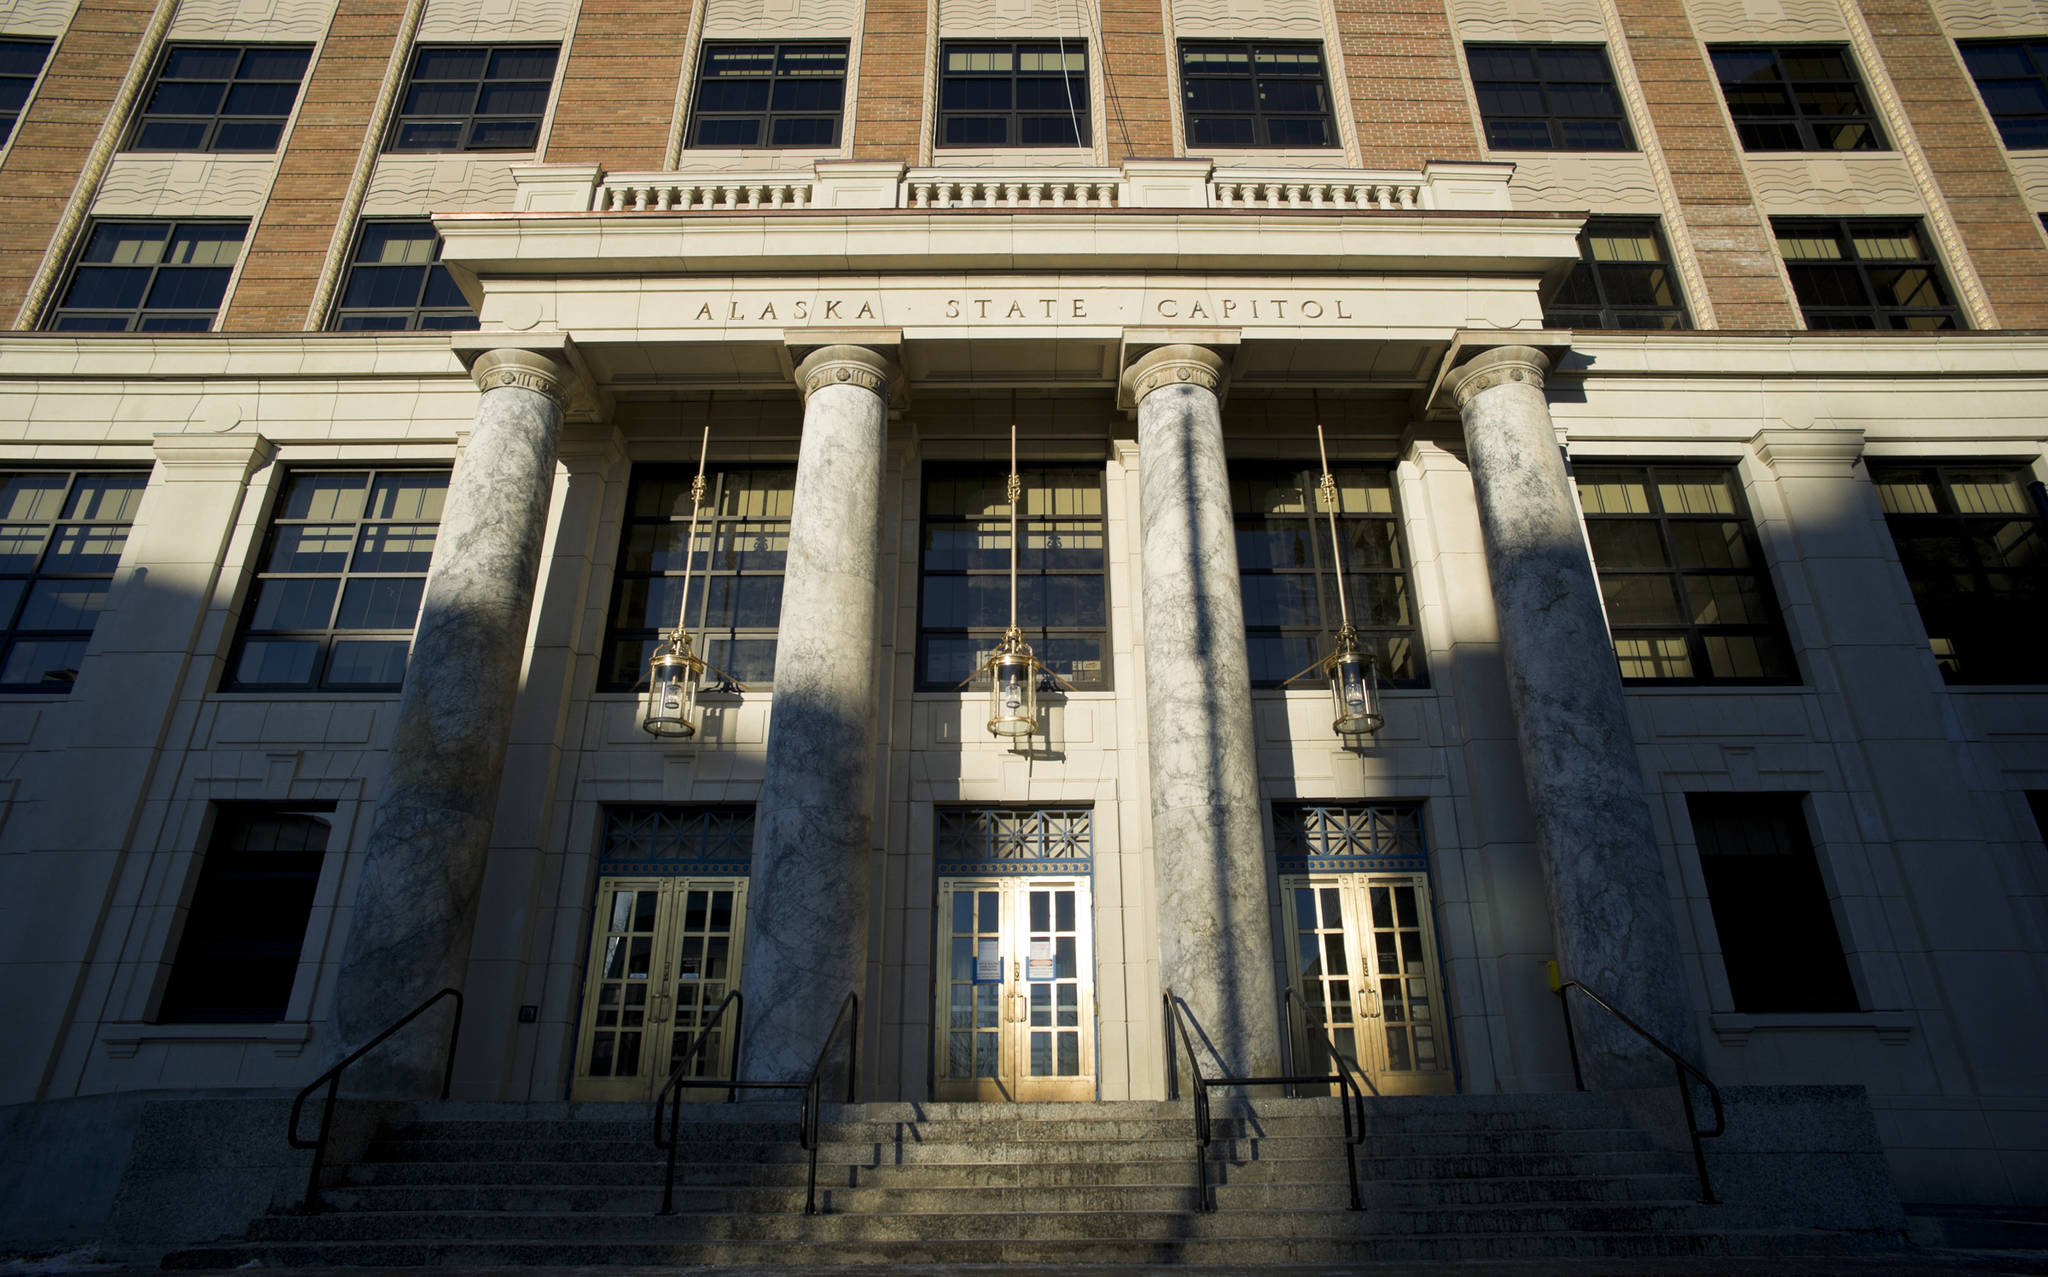 Sunlight exposes the front of the Alaska State Capitol building on Tuesday, Jan. 3, 2017. (Michael Penn | Juneau Empire)